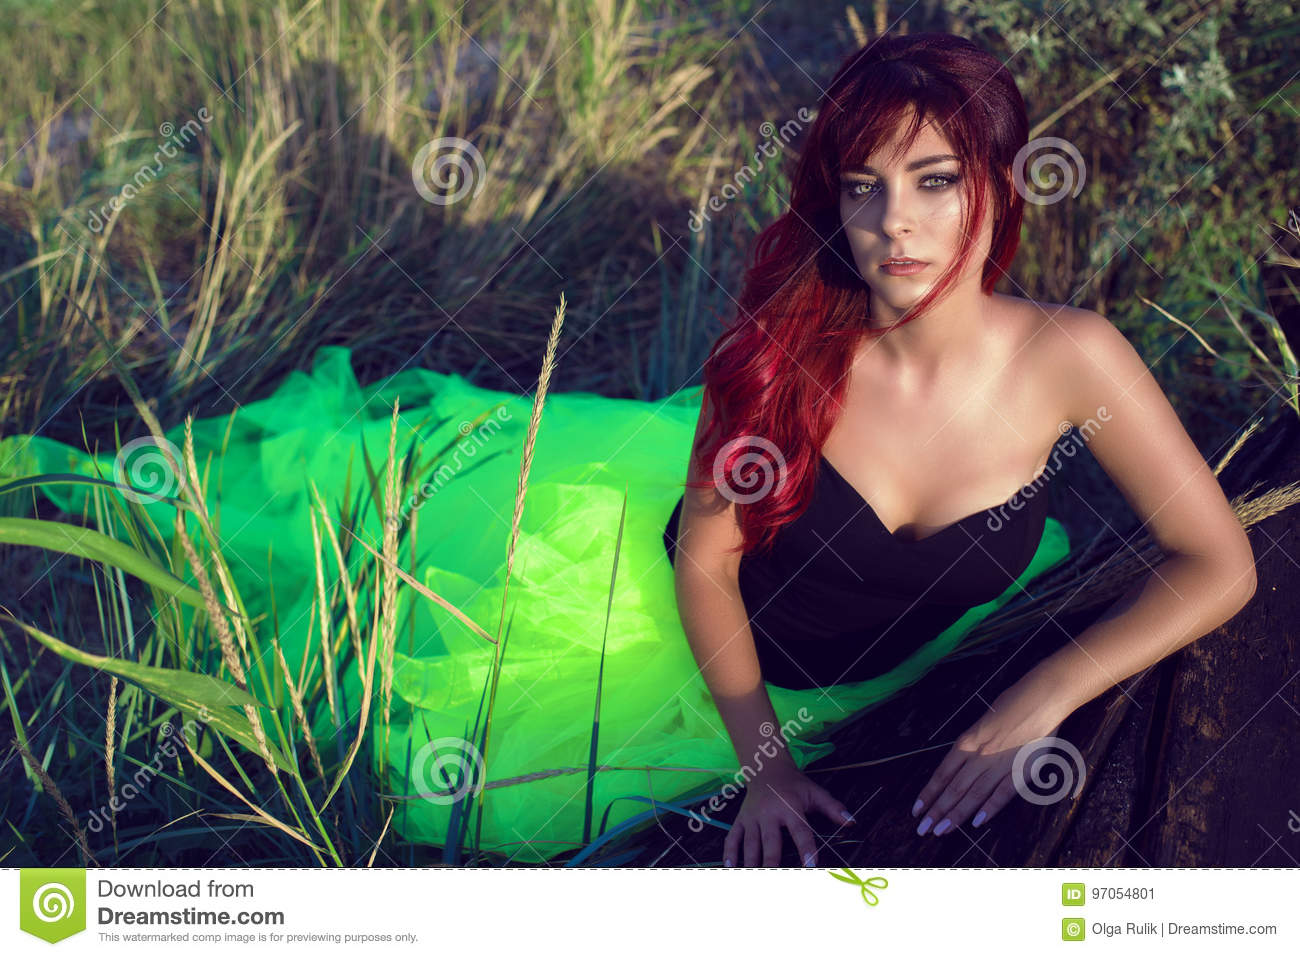 Beautiful red haired woman in black corset and long tail green veiling skirt leaning on the shabby upside down wooden boat